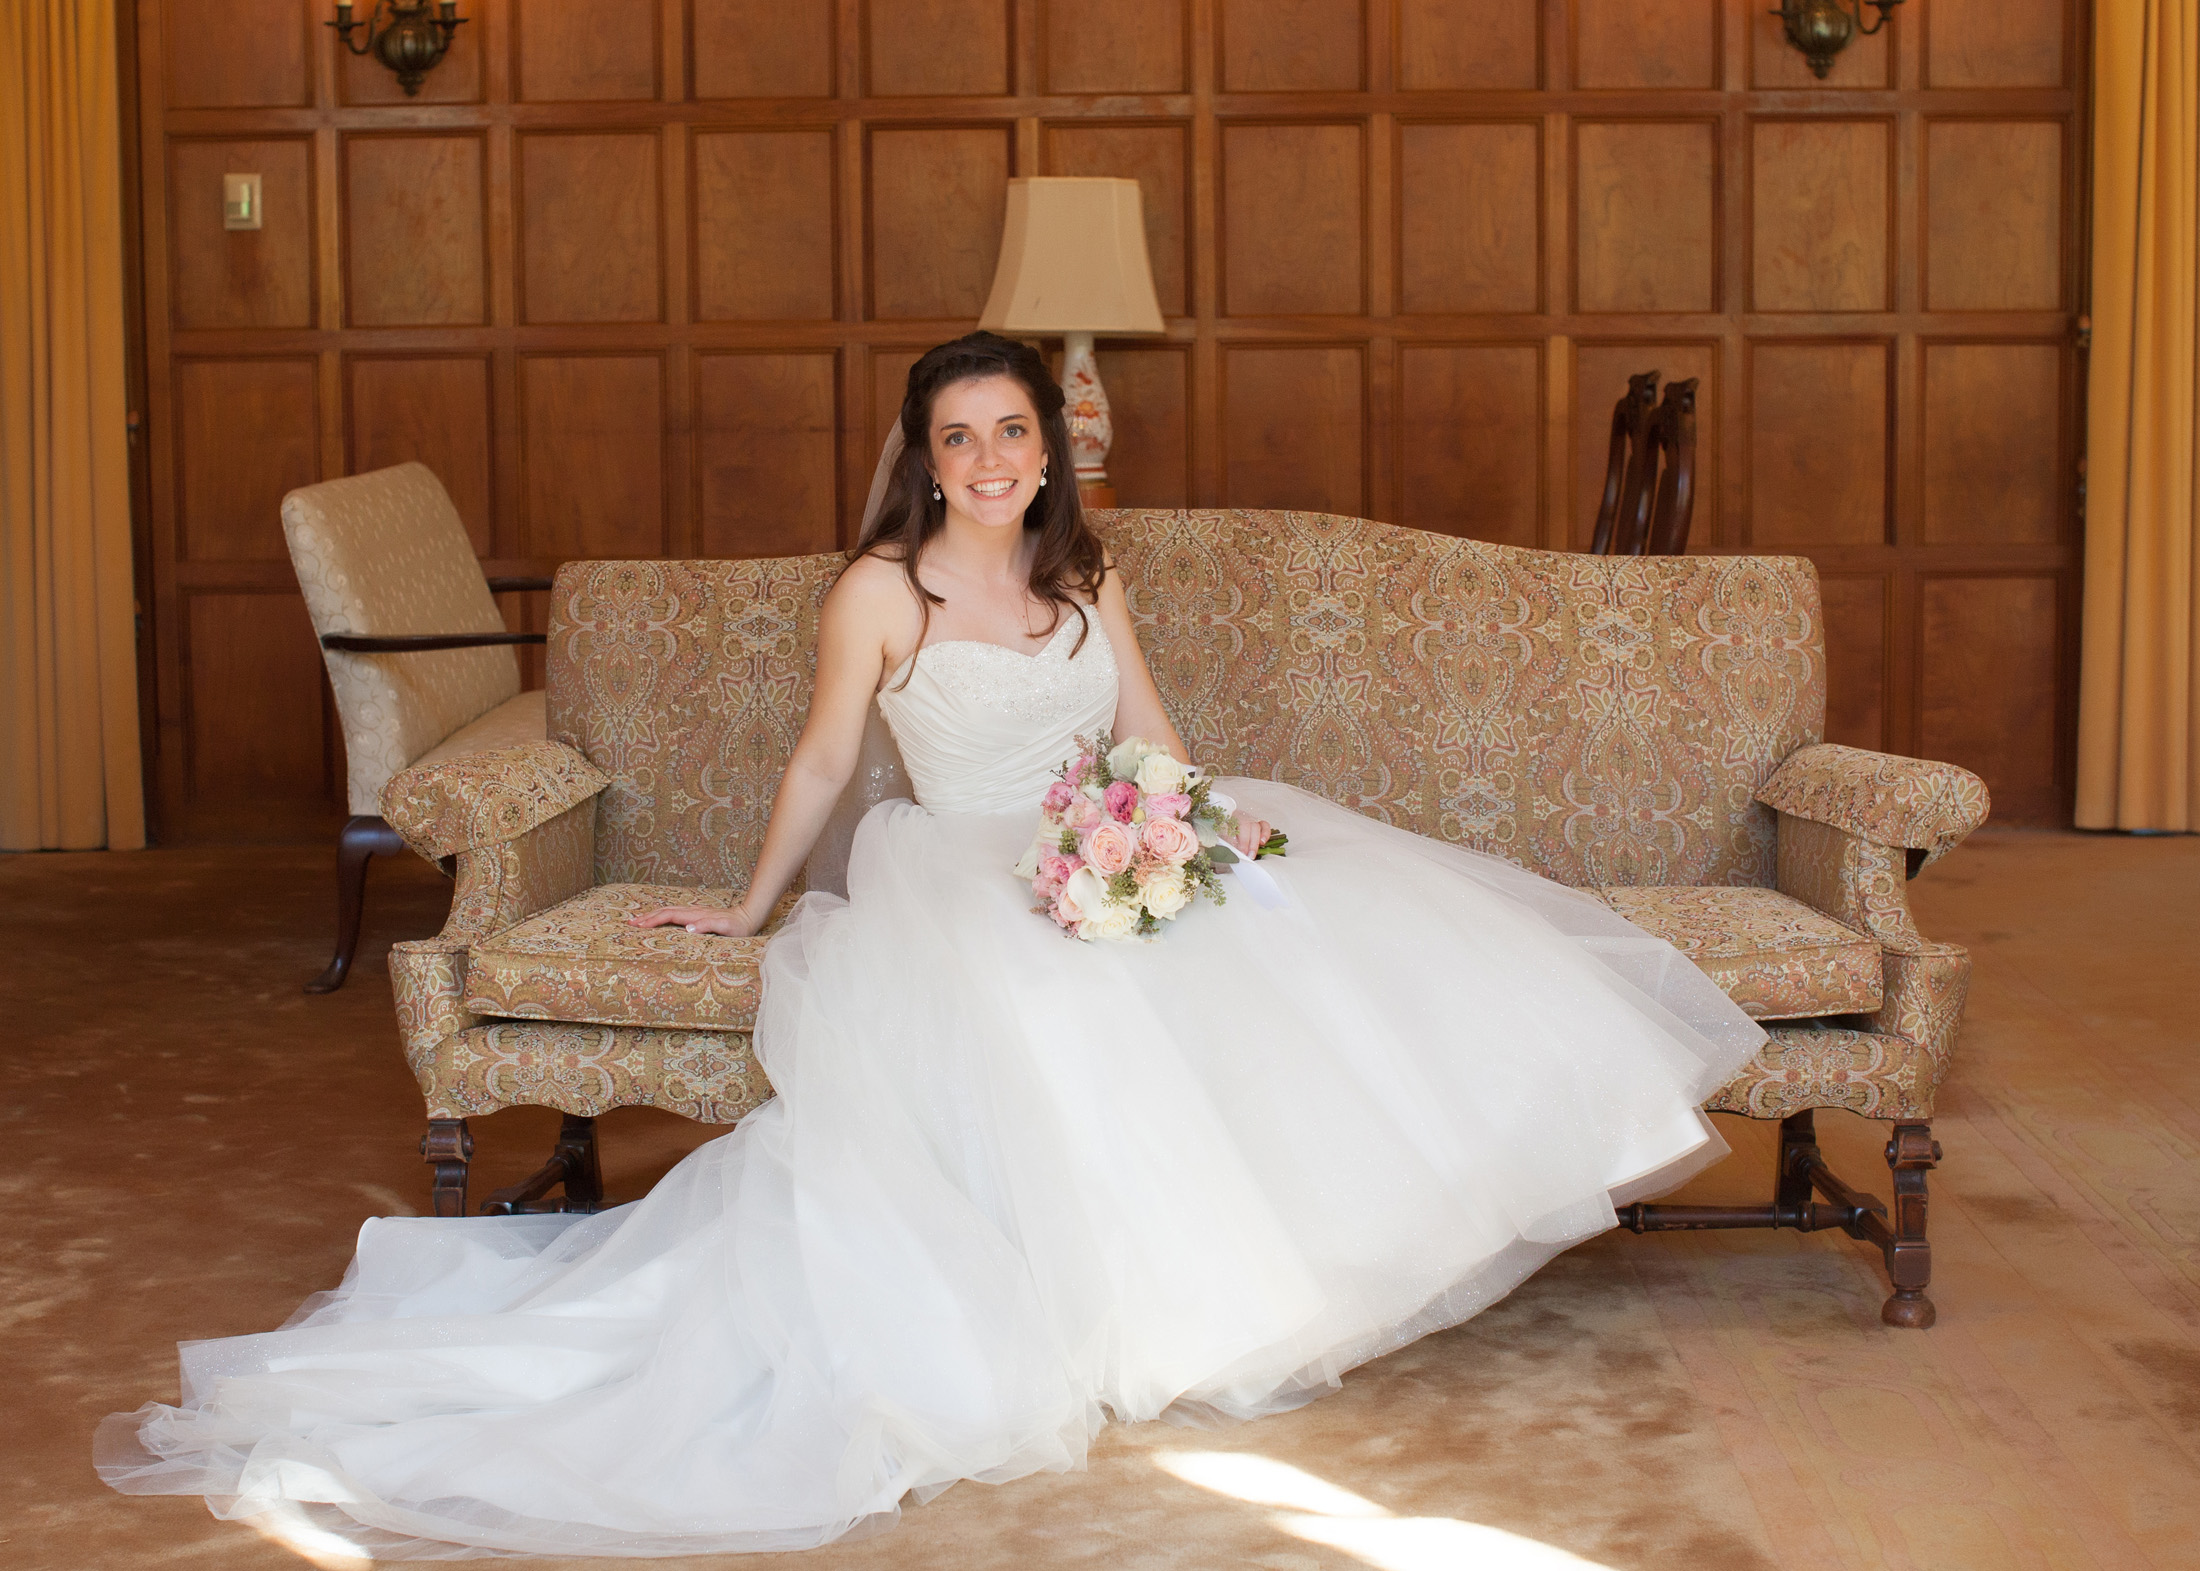 UofM_weddings_hull_melanie_reyes_042